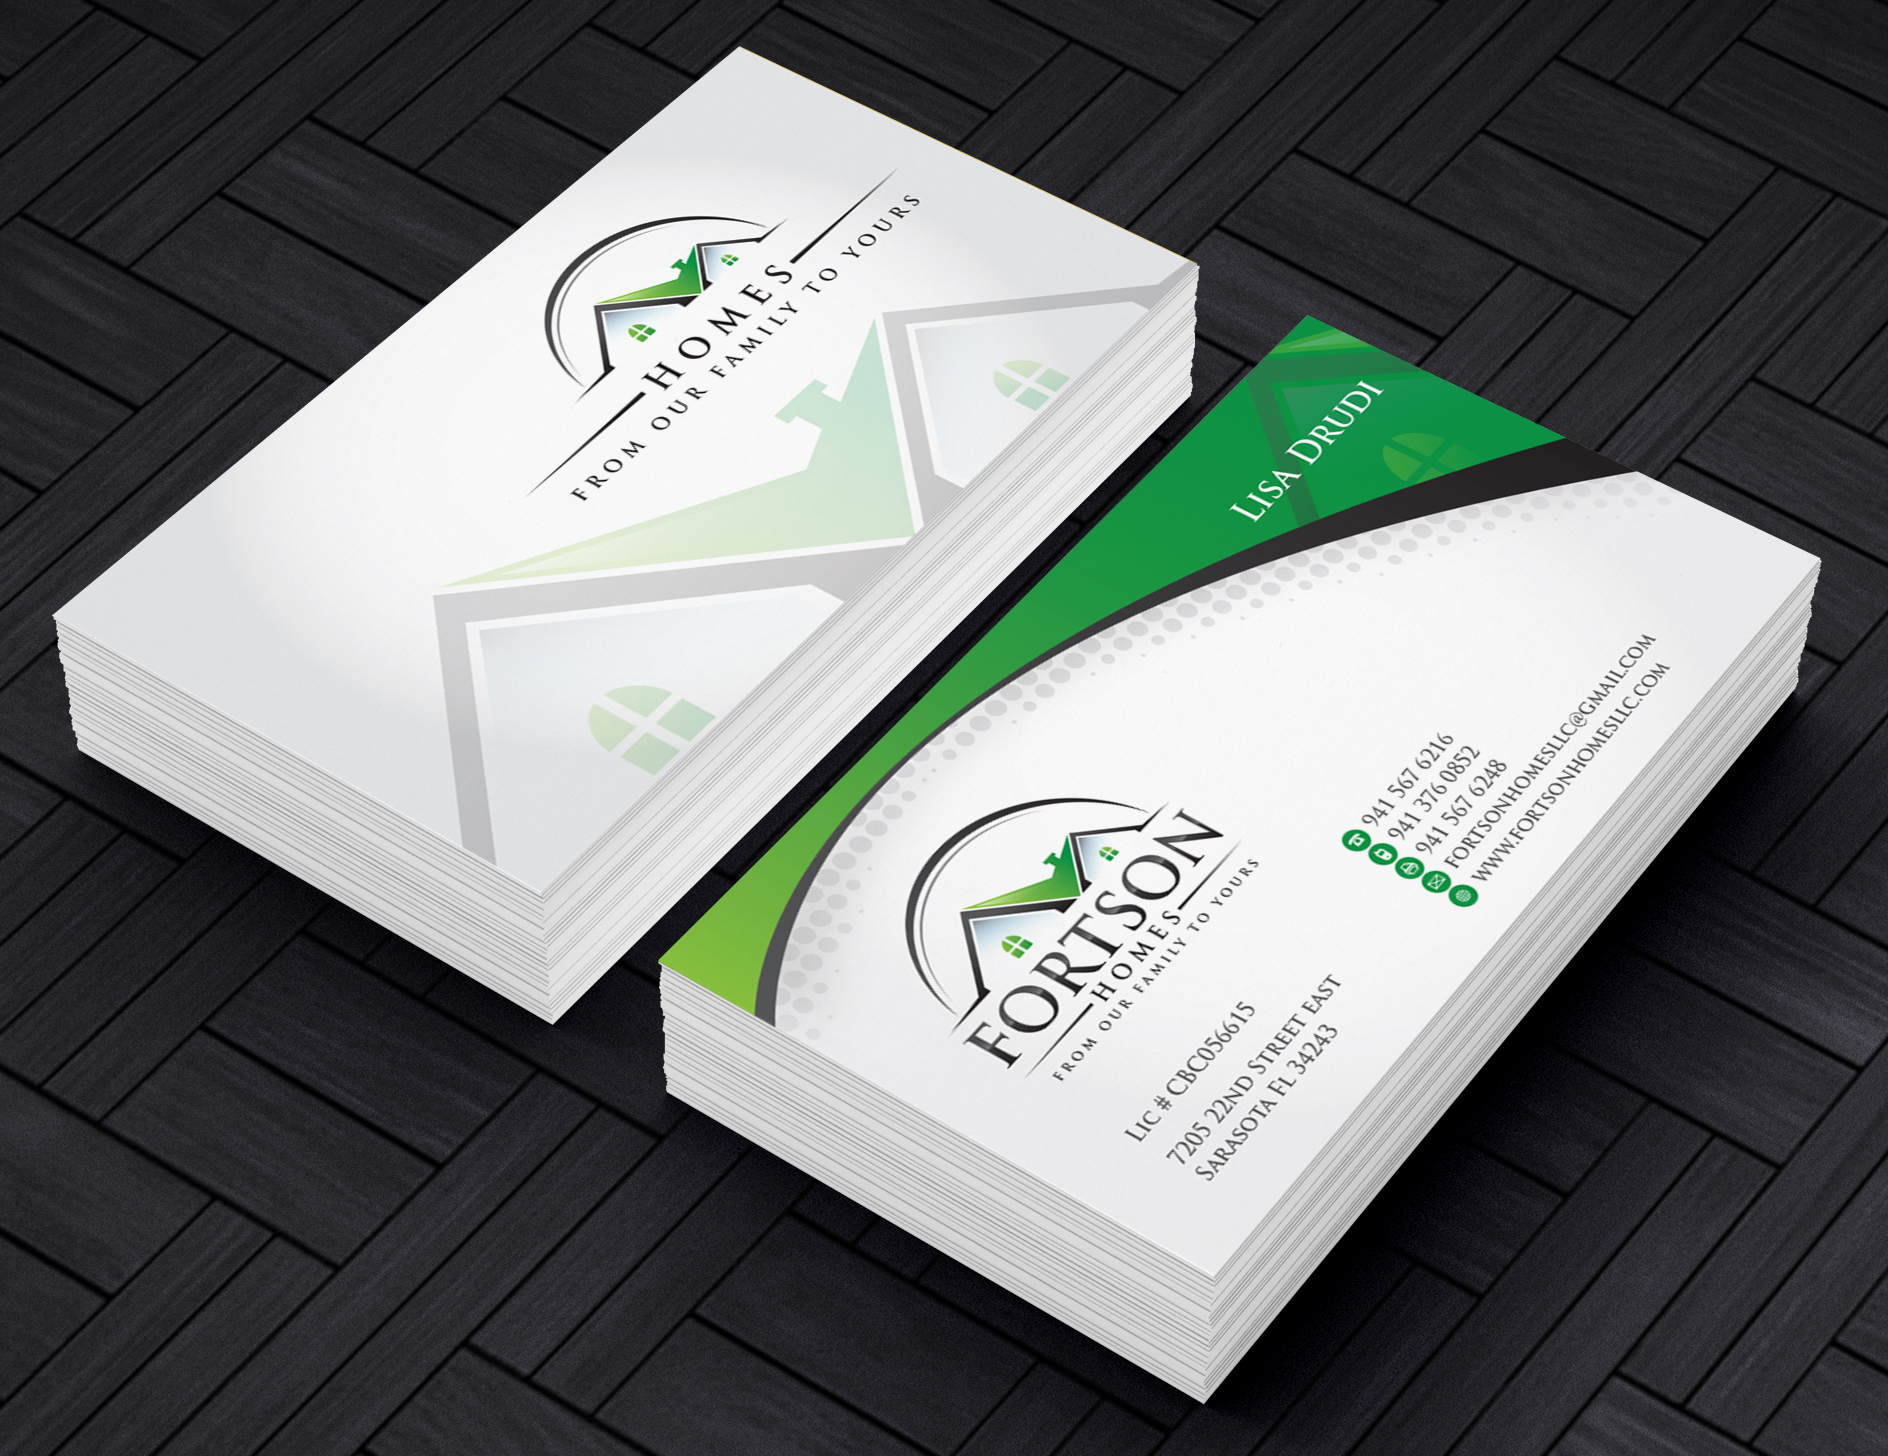 Fortson Homes Stationery / Business cards - Construction